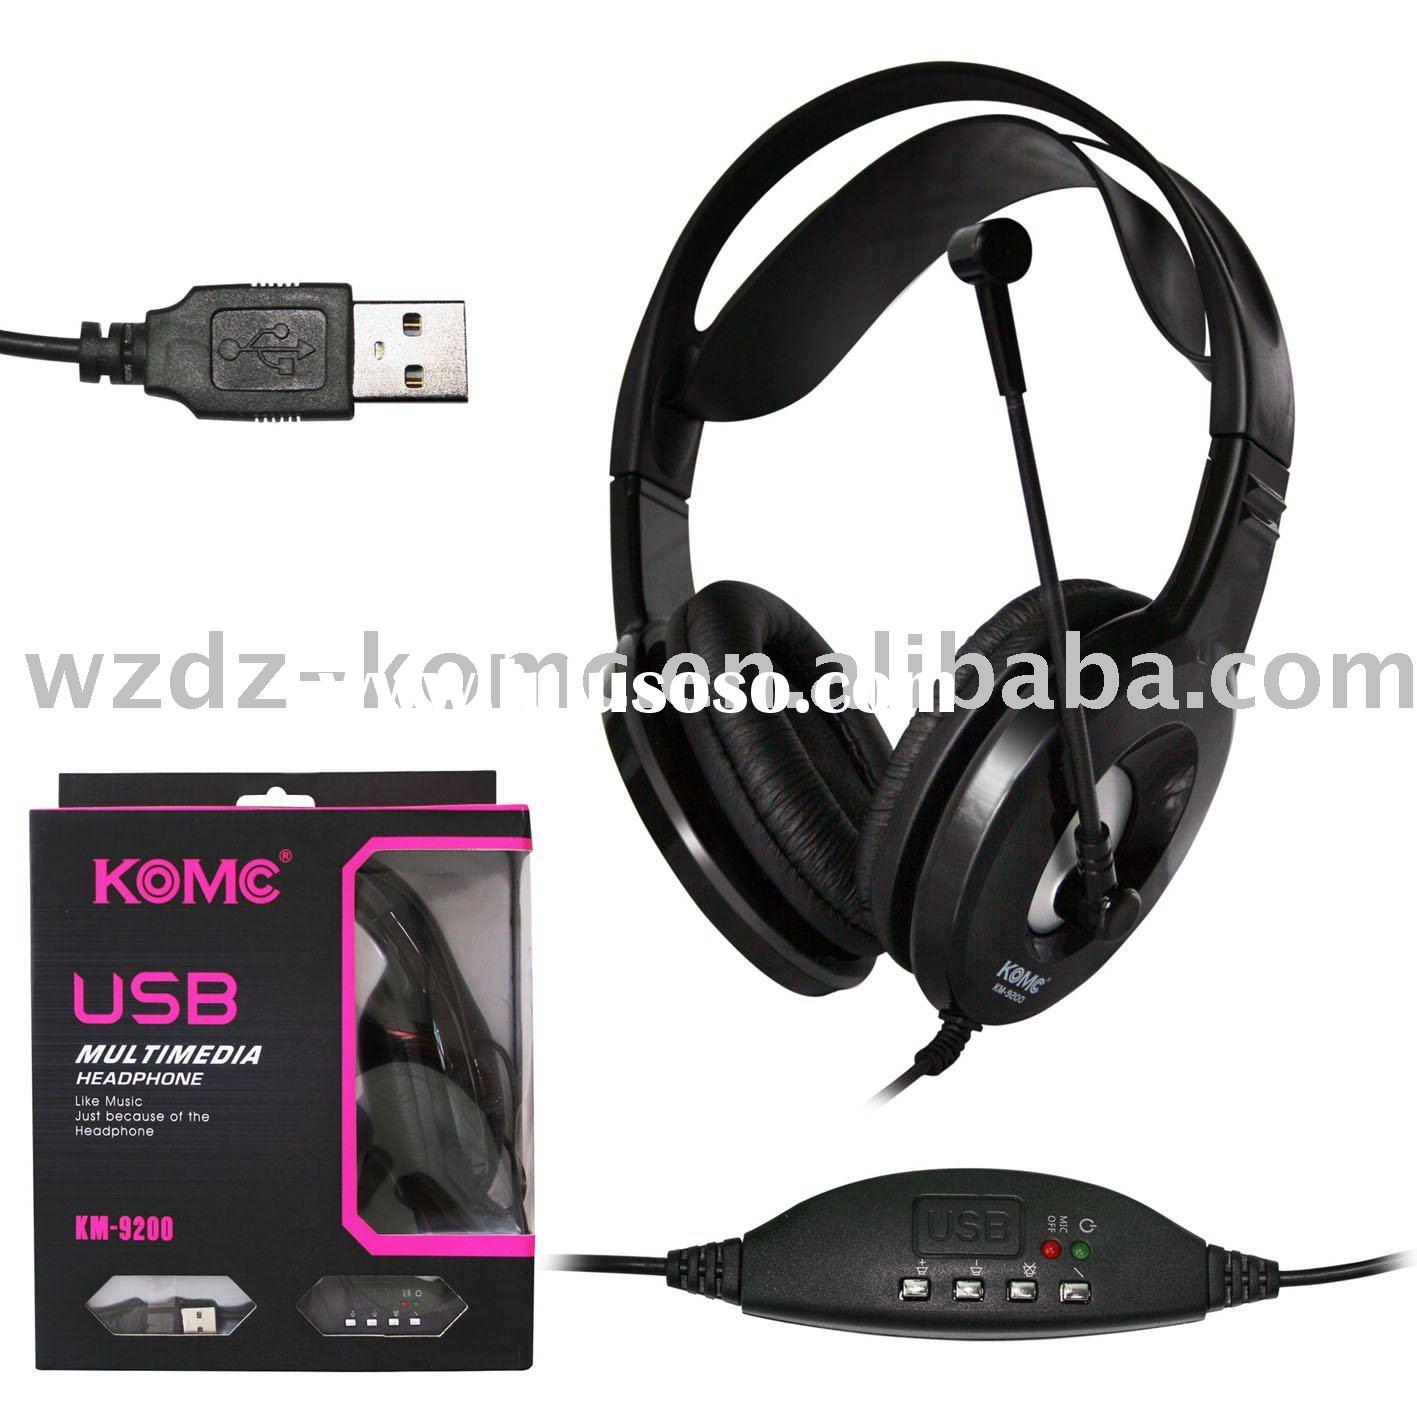 Logitech Usb Headset Wiring Diagrams Headphone Diagram Km9200